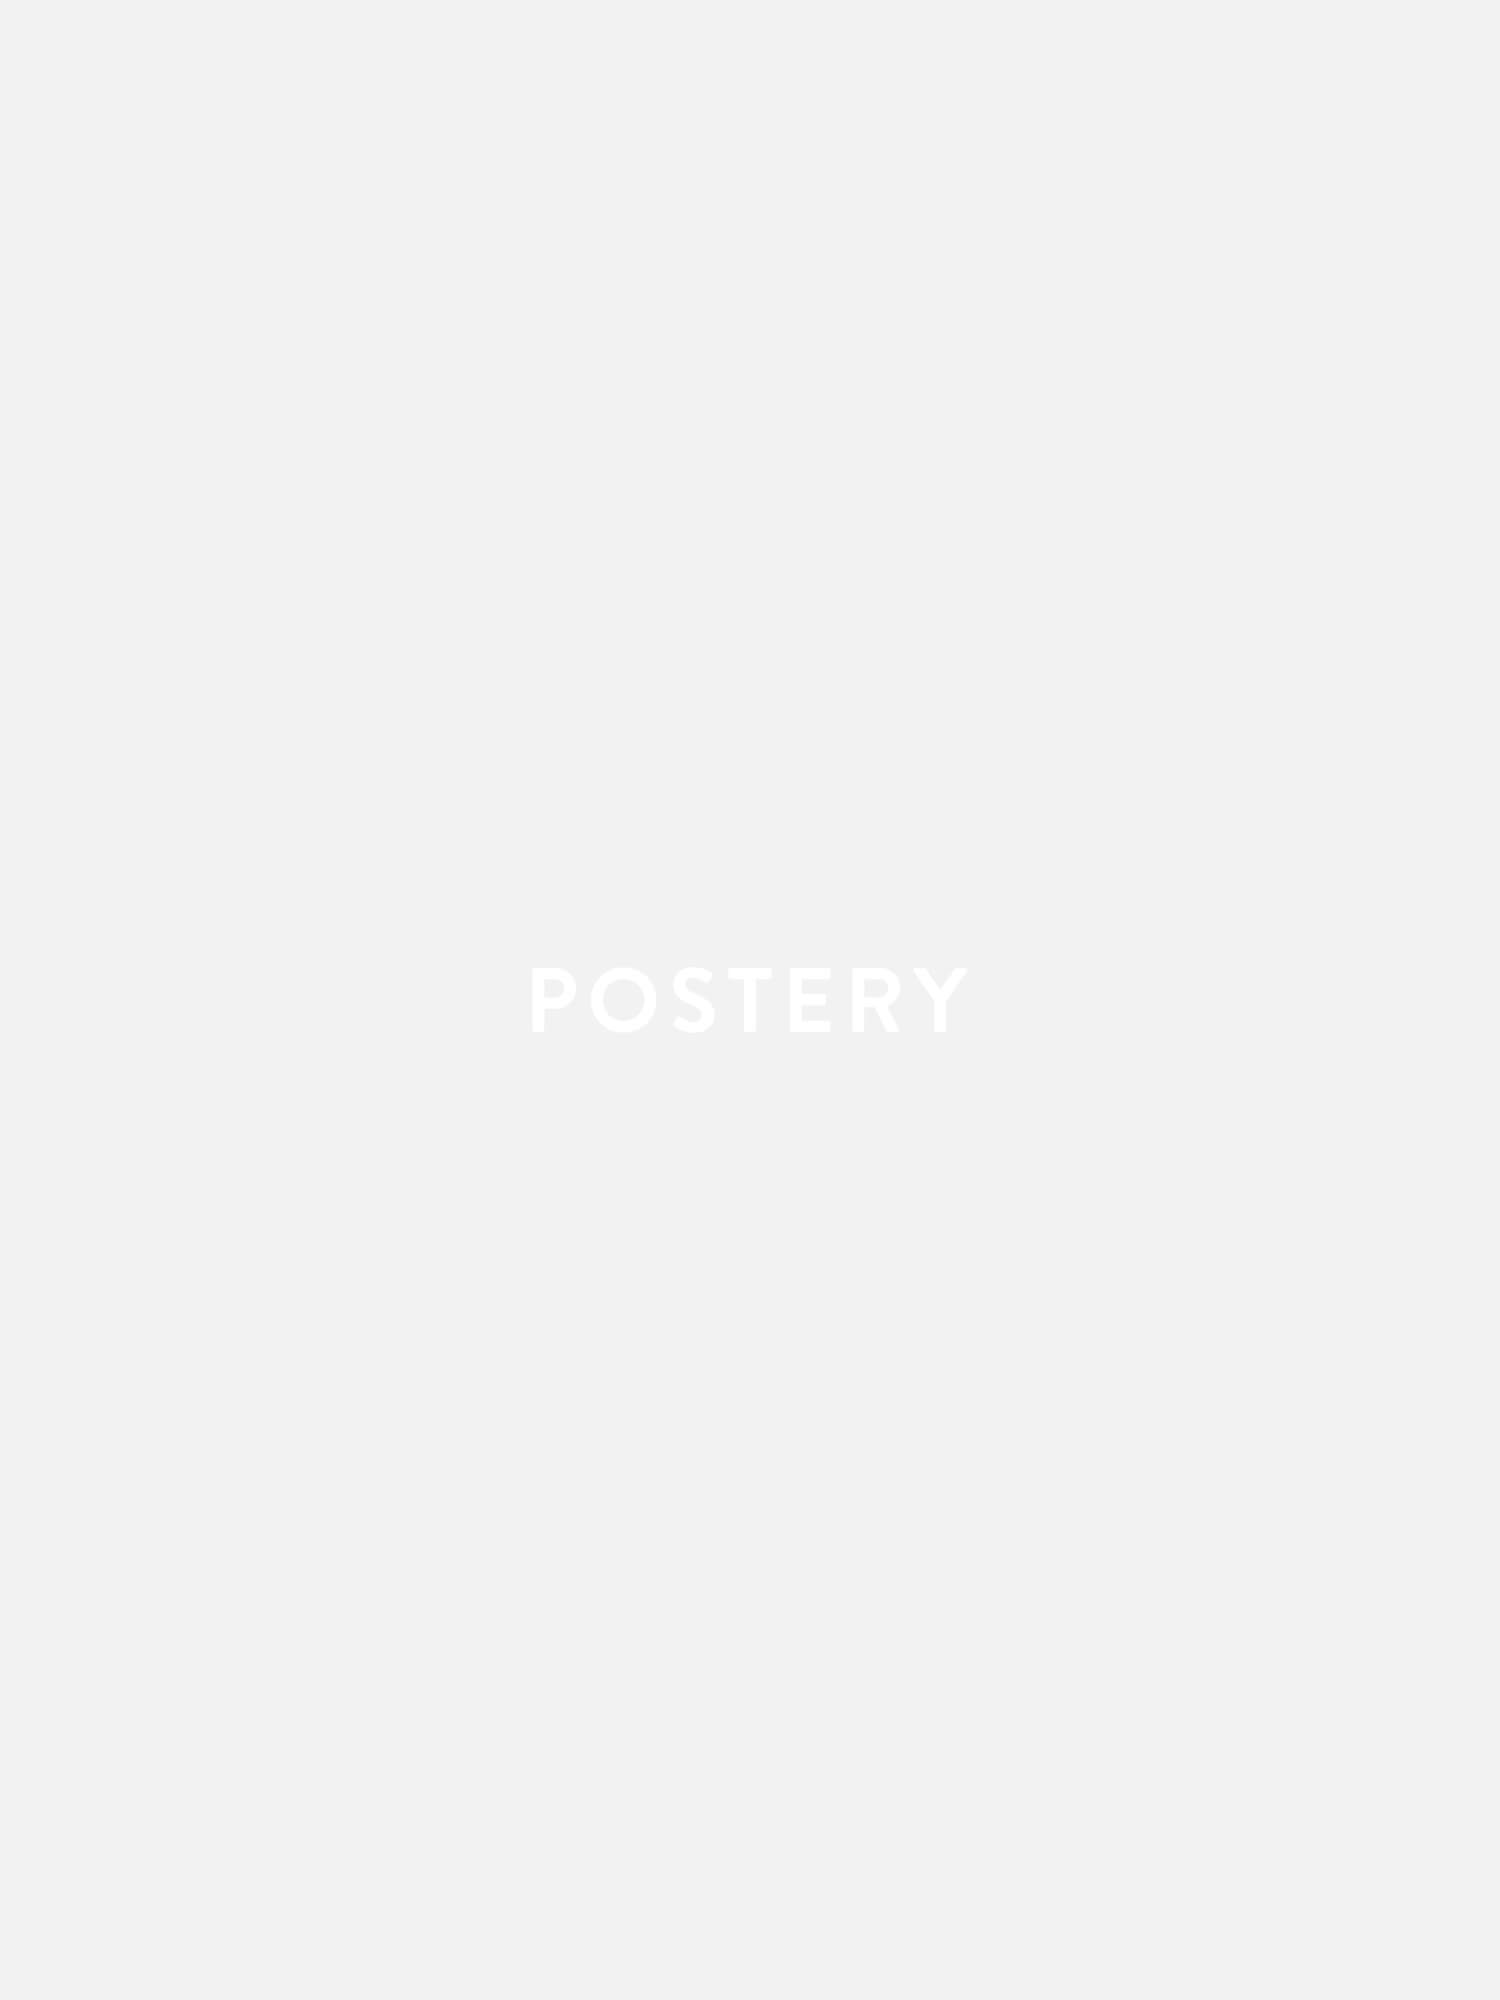 Sheep on the Road Poster